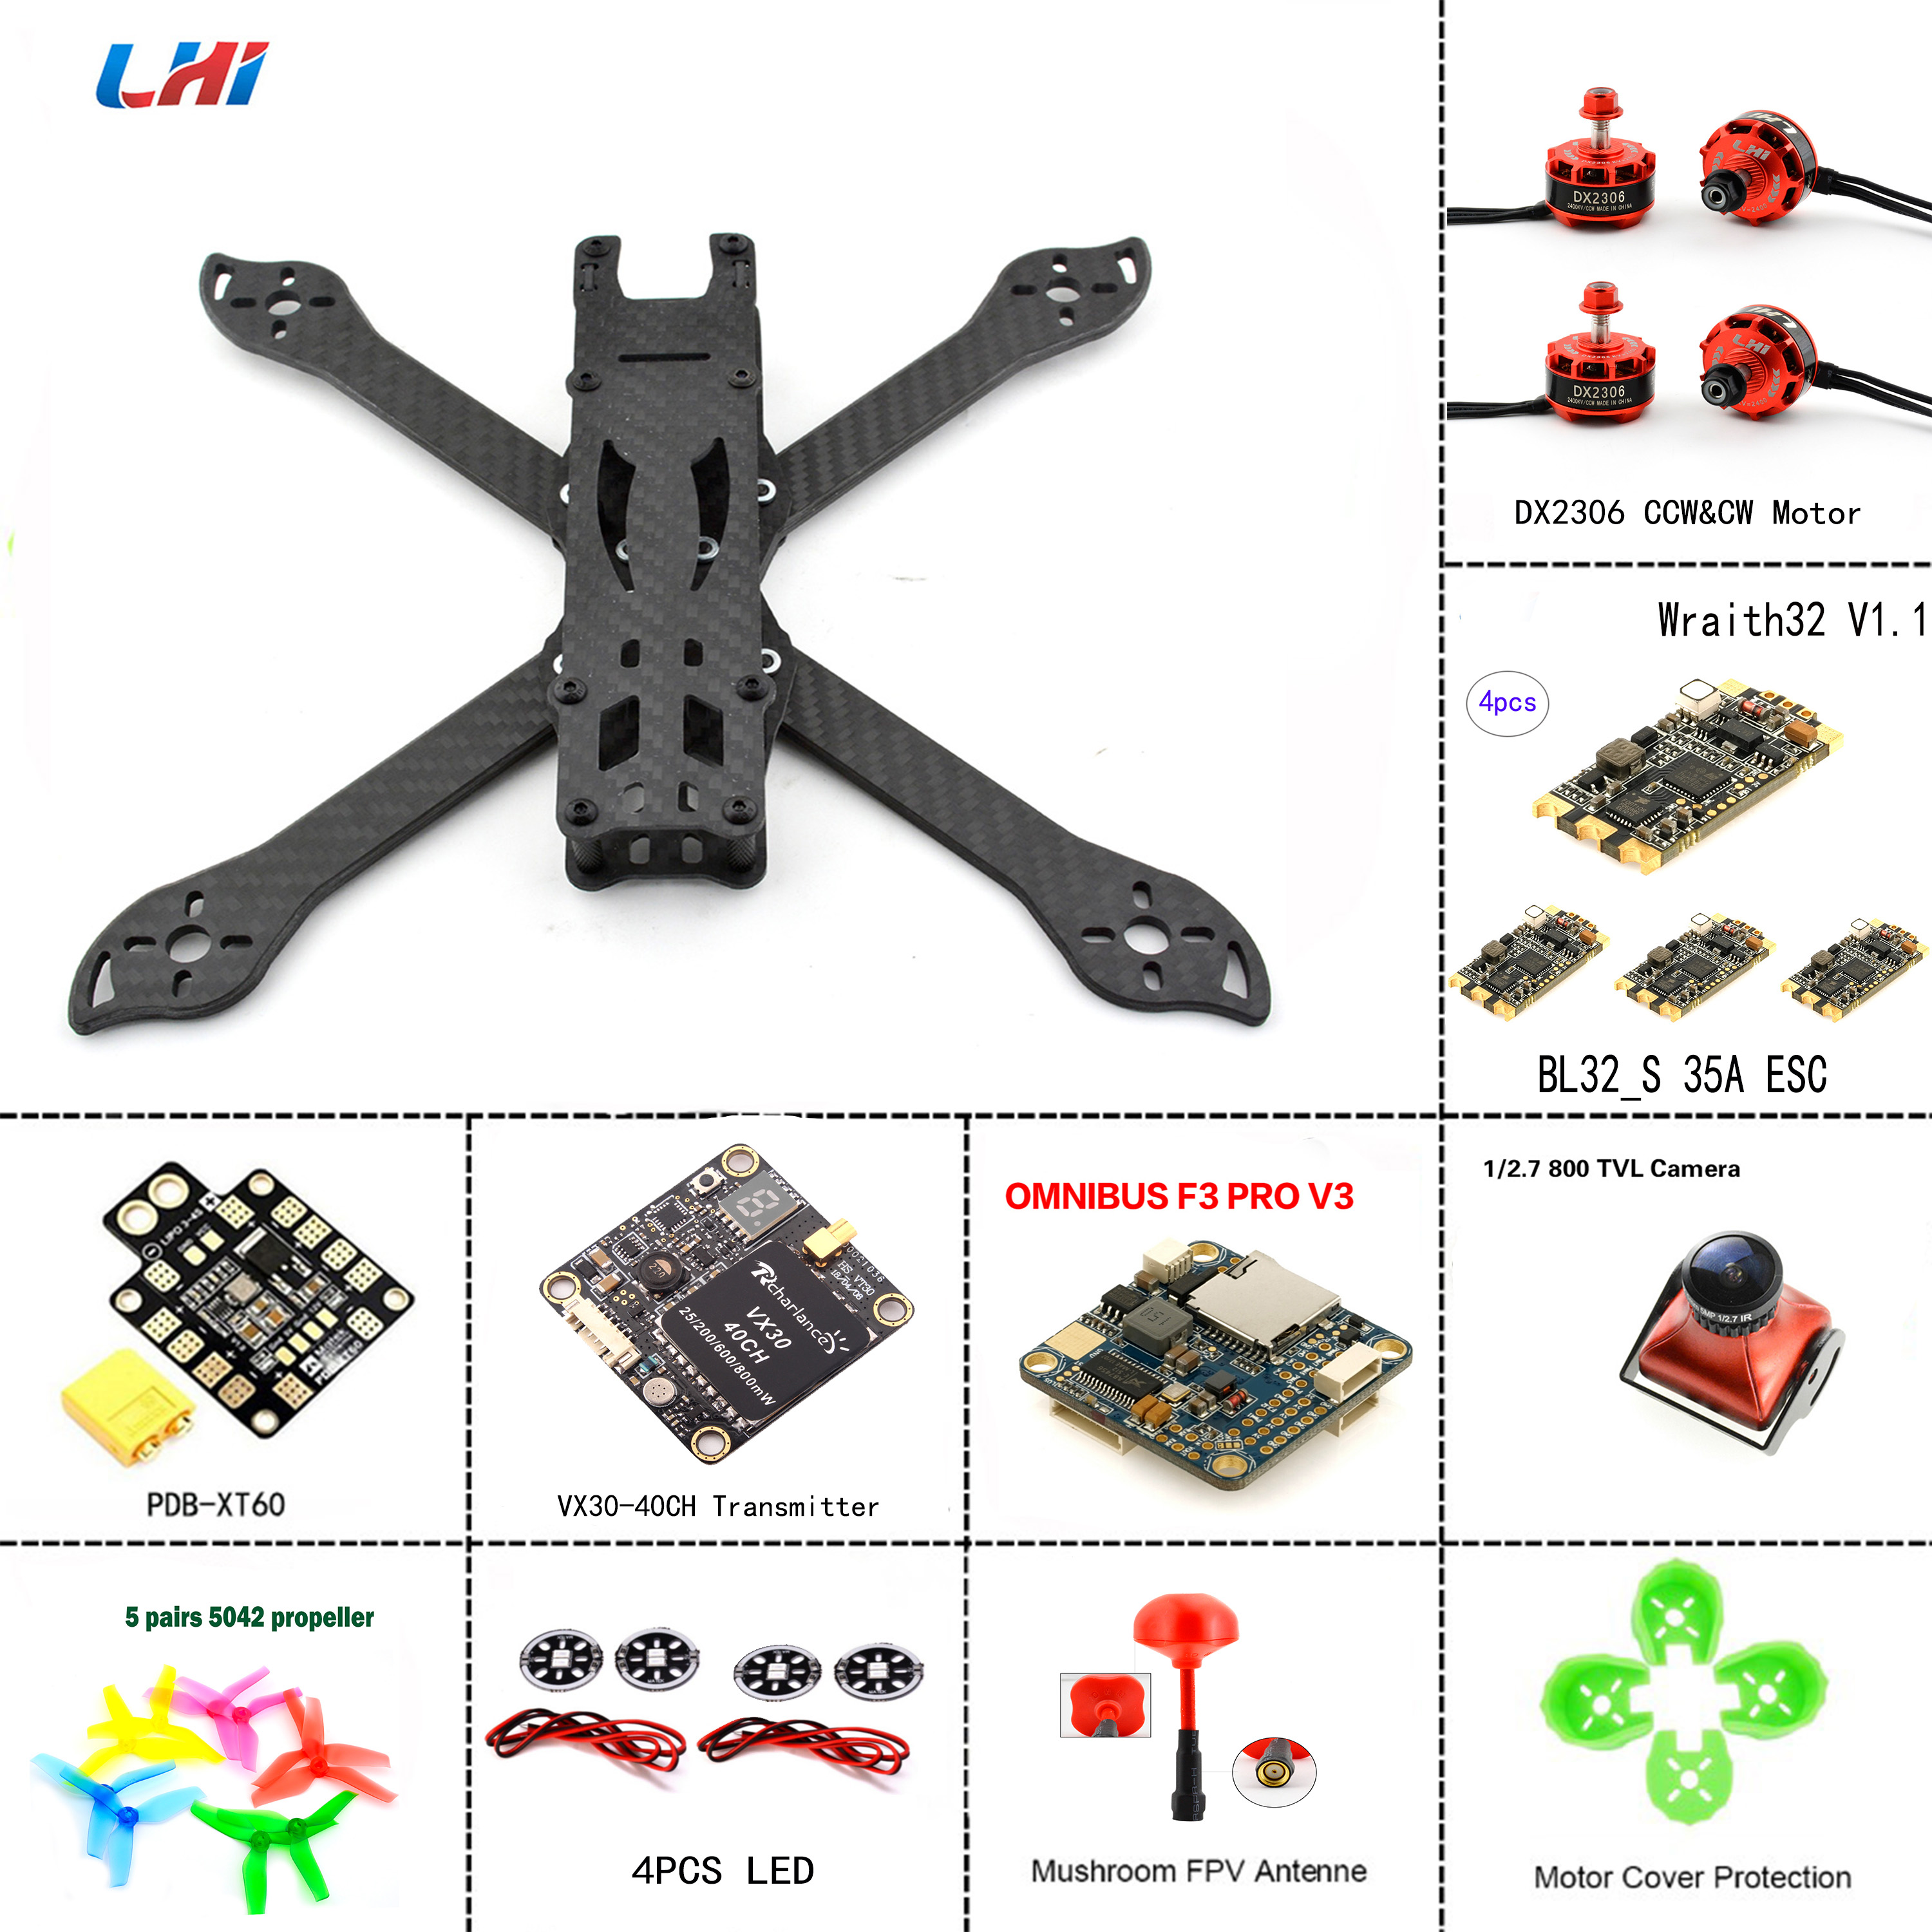 DIY PUDA TureX frame fpv camera quadcopter kit to assemble of omnibus F3 flight controller 2306 brushless motor&Wraith32 35A ESC xxxholic omnibus 6